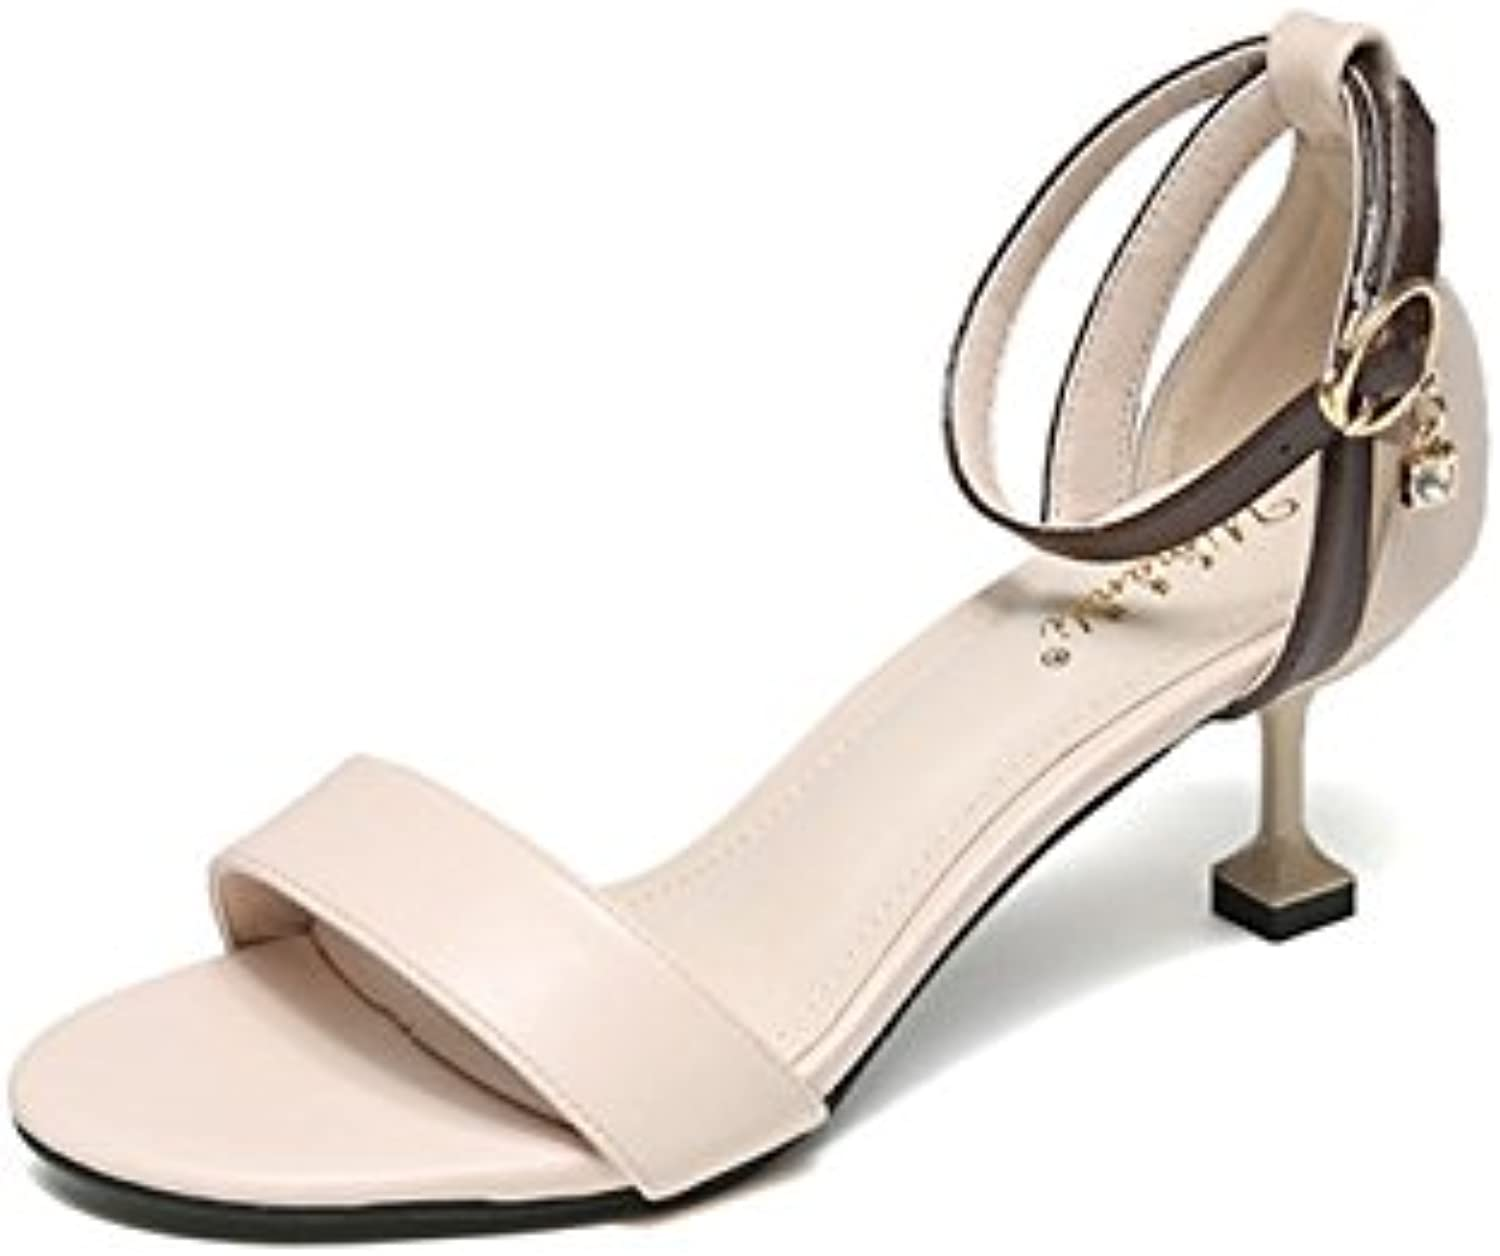 Gracosy Leather Pump shoes, Women's Heeled Sandals Fashion Ankle Strap Dress Sandal Peep Toe High Heels